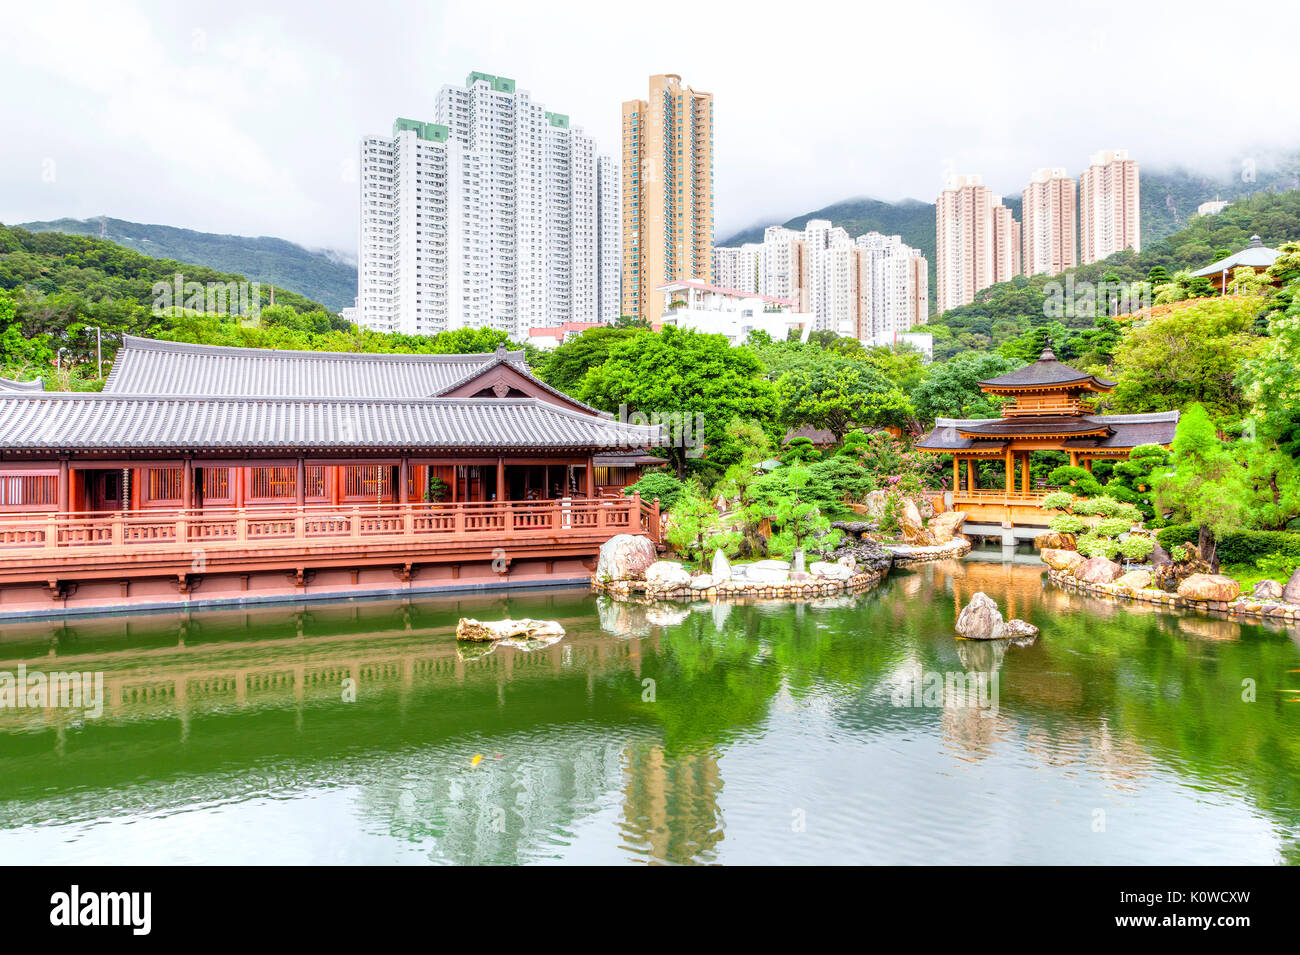 Blue Pond and Pavilion Bridge at Nan Lian Garden, a Chinese Classical Garden in Diamond Hill, Kowloon, Hong Kong. The public park has an area of 3.5 h - Stock Image